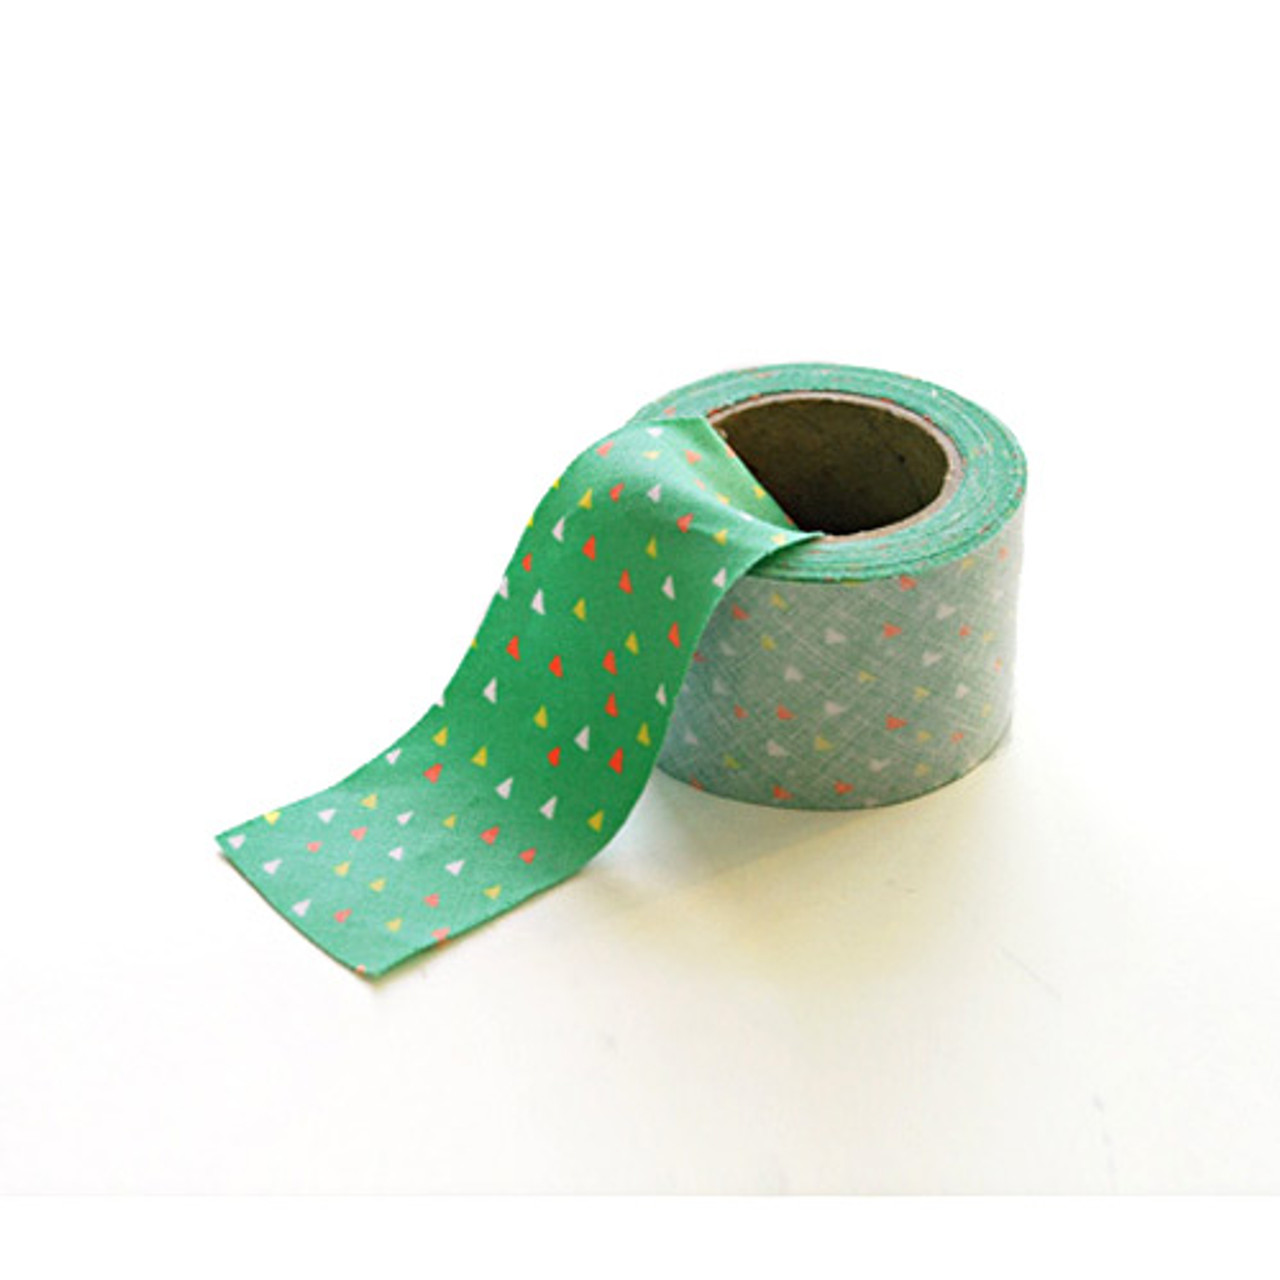 Dailylike Fabric Bias Tape Childhood Sewing